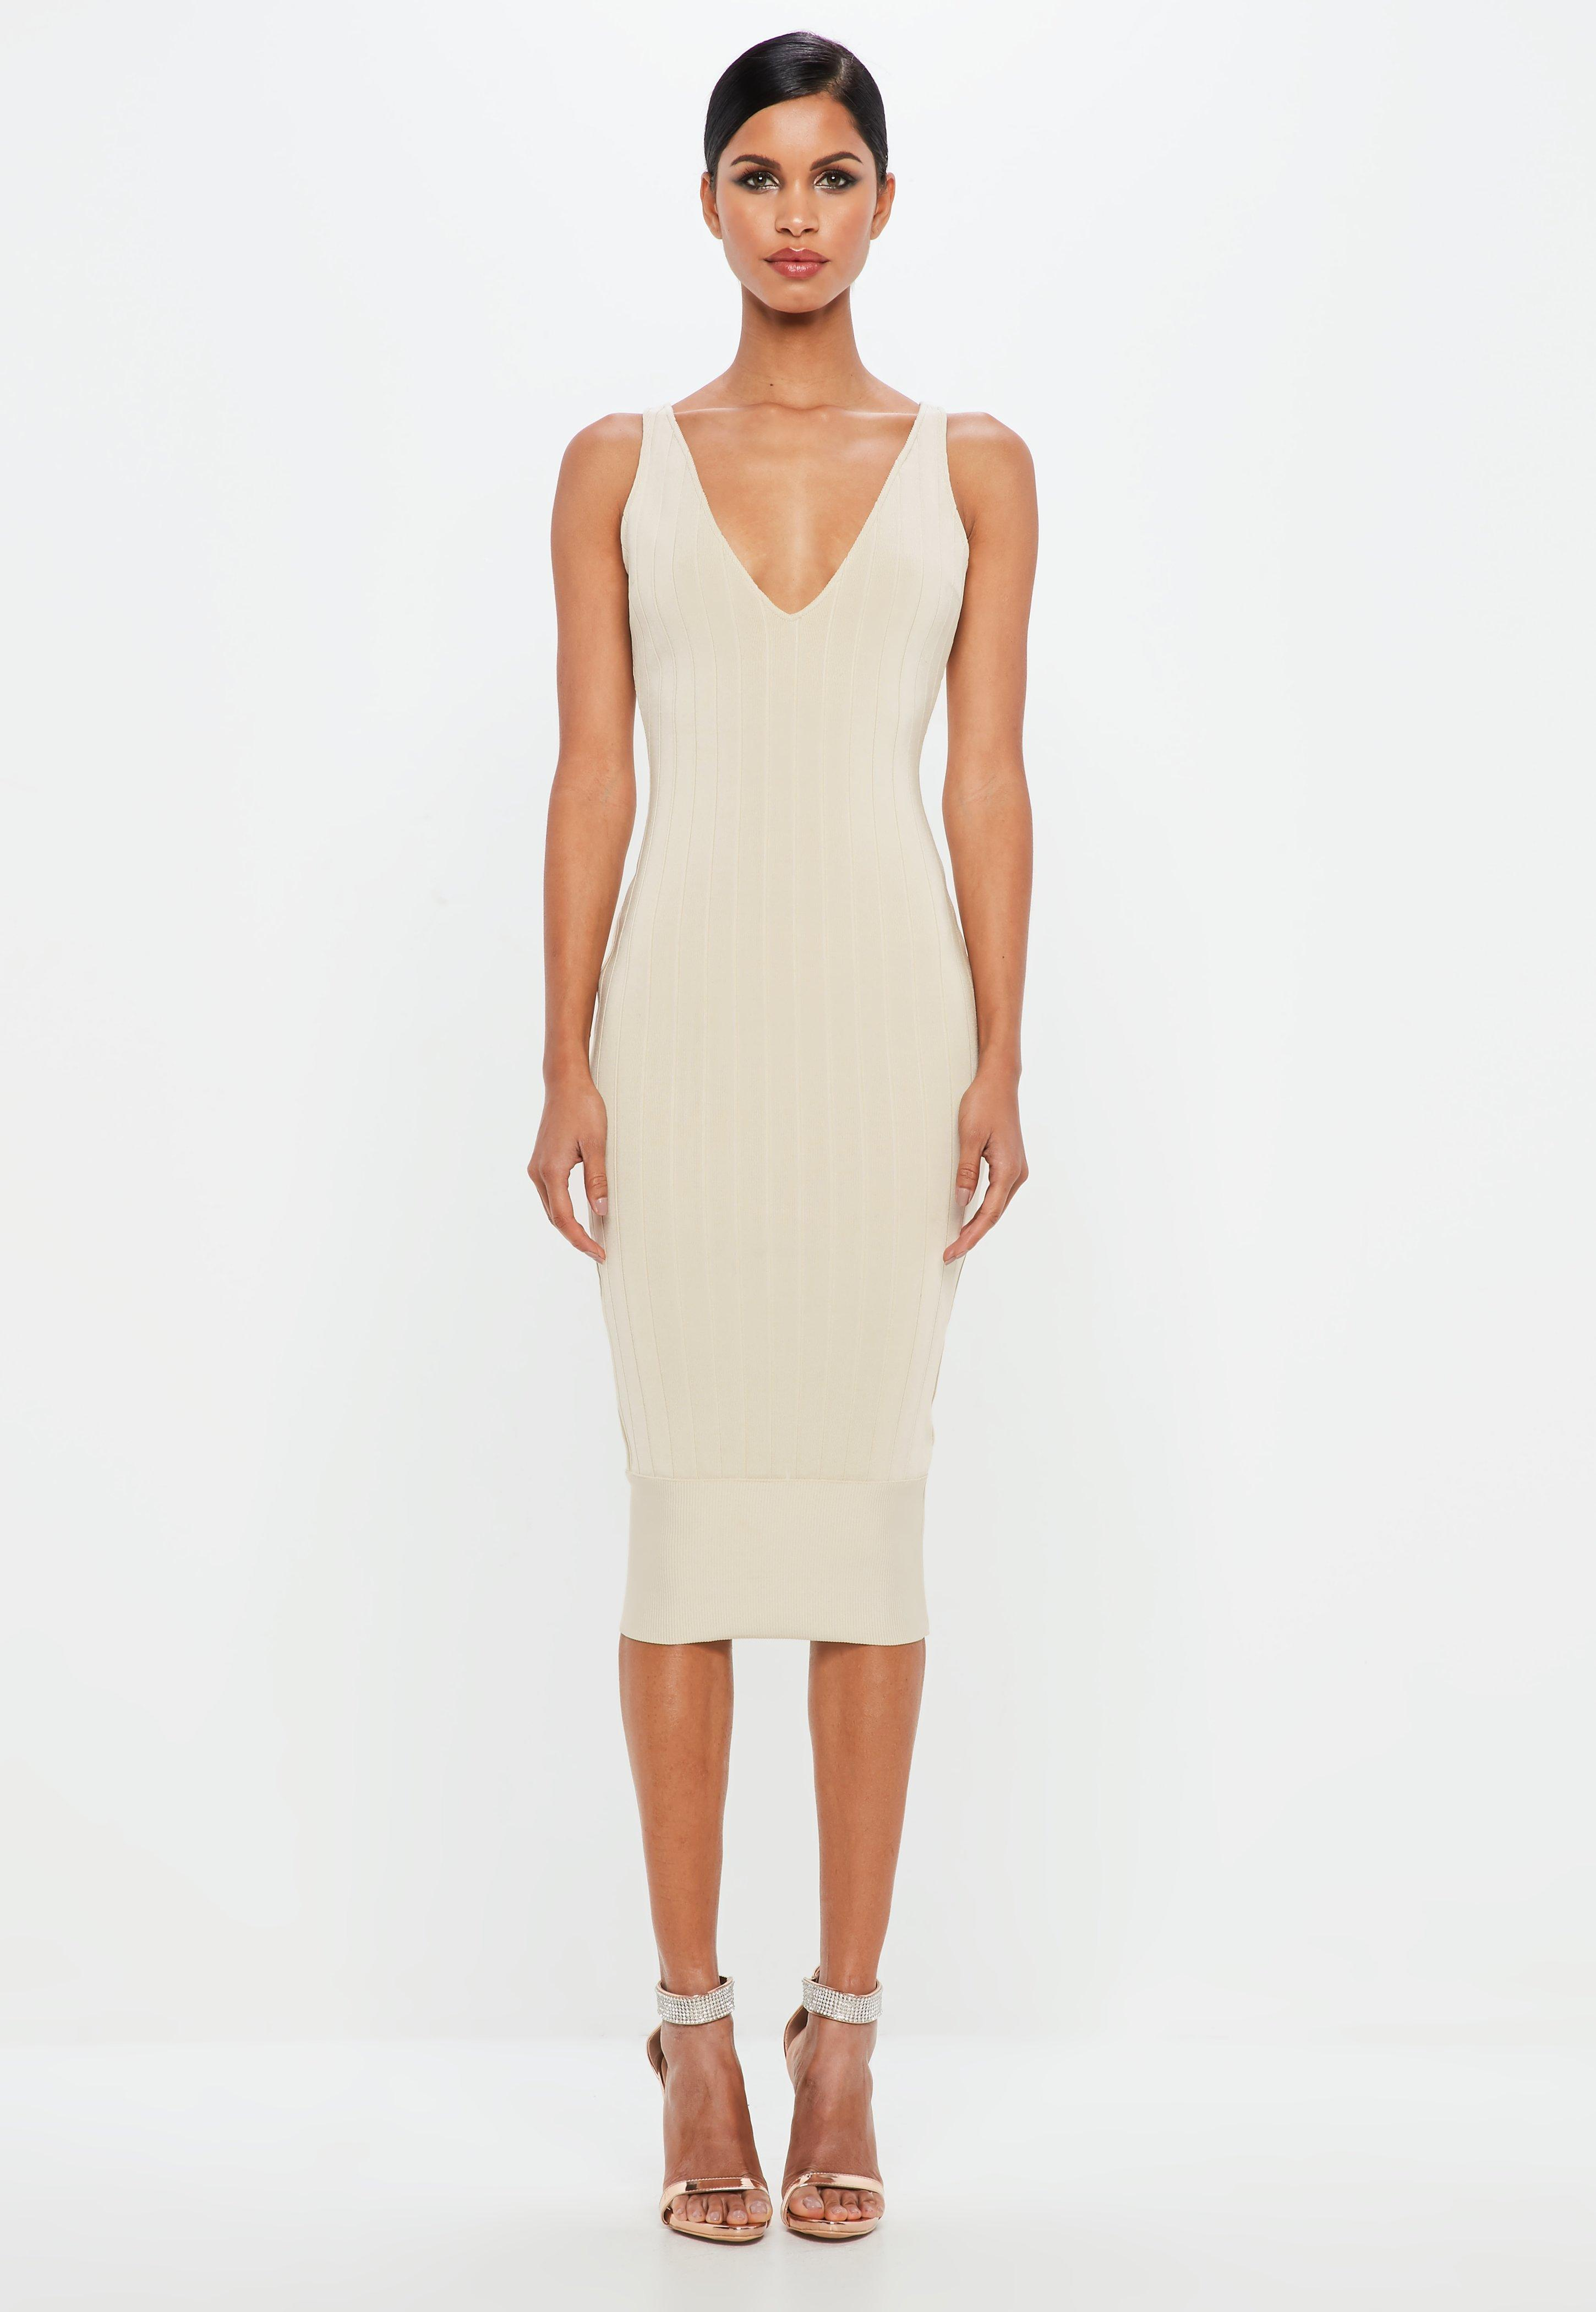 Bandage Dresses | Tight Fitting Dresses Online - Missguided